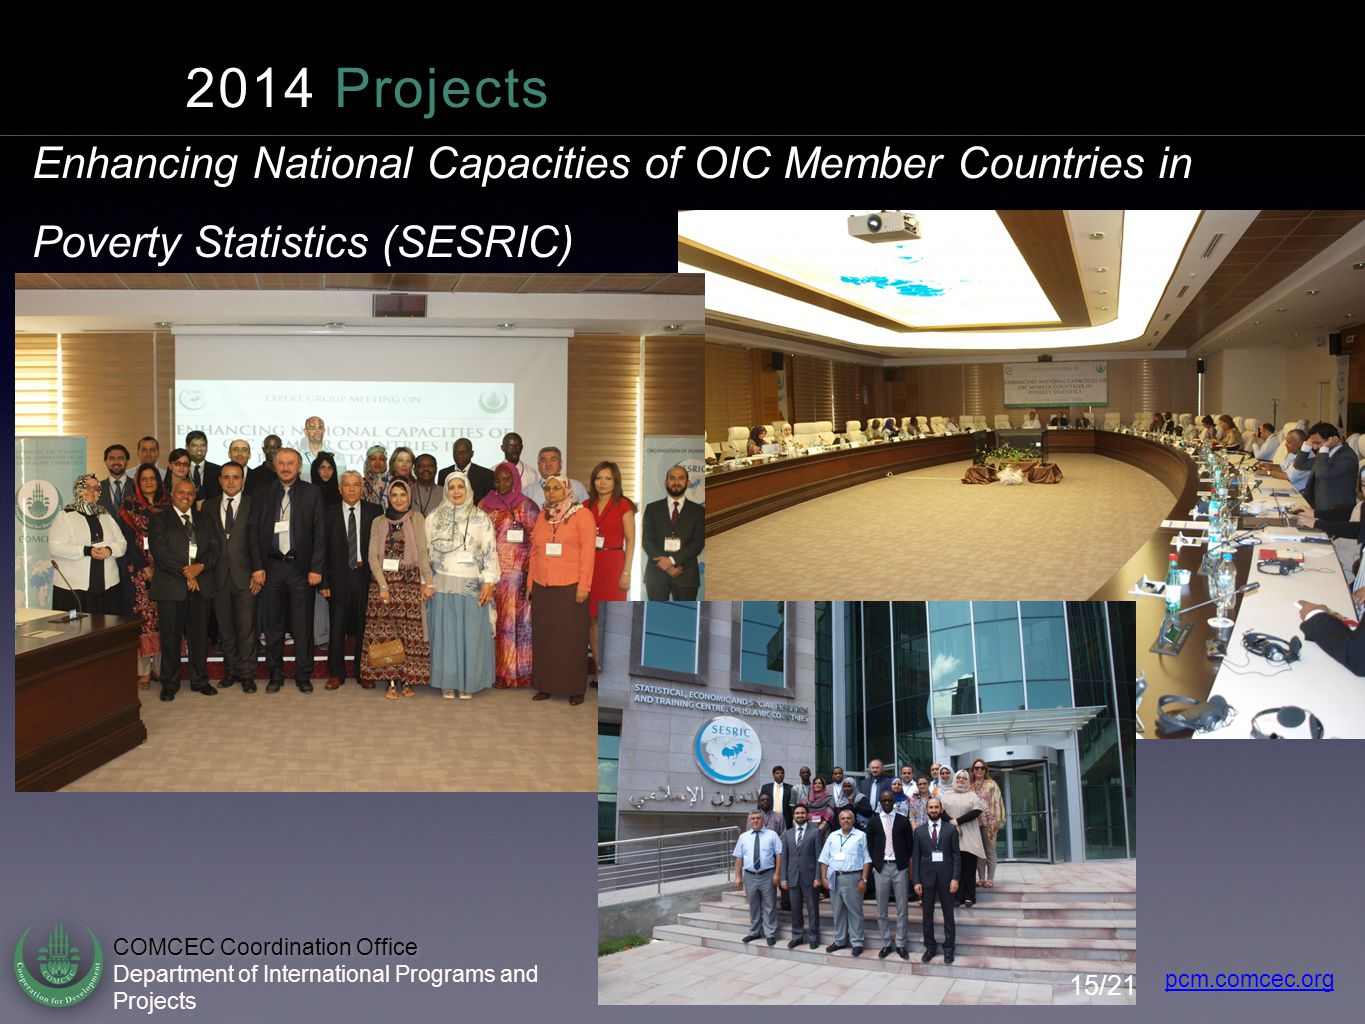 Enhancing National Capacities of OIC Member Countries in Poverty Statistics (SESRIC)